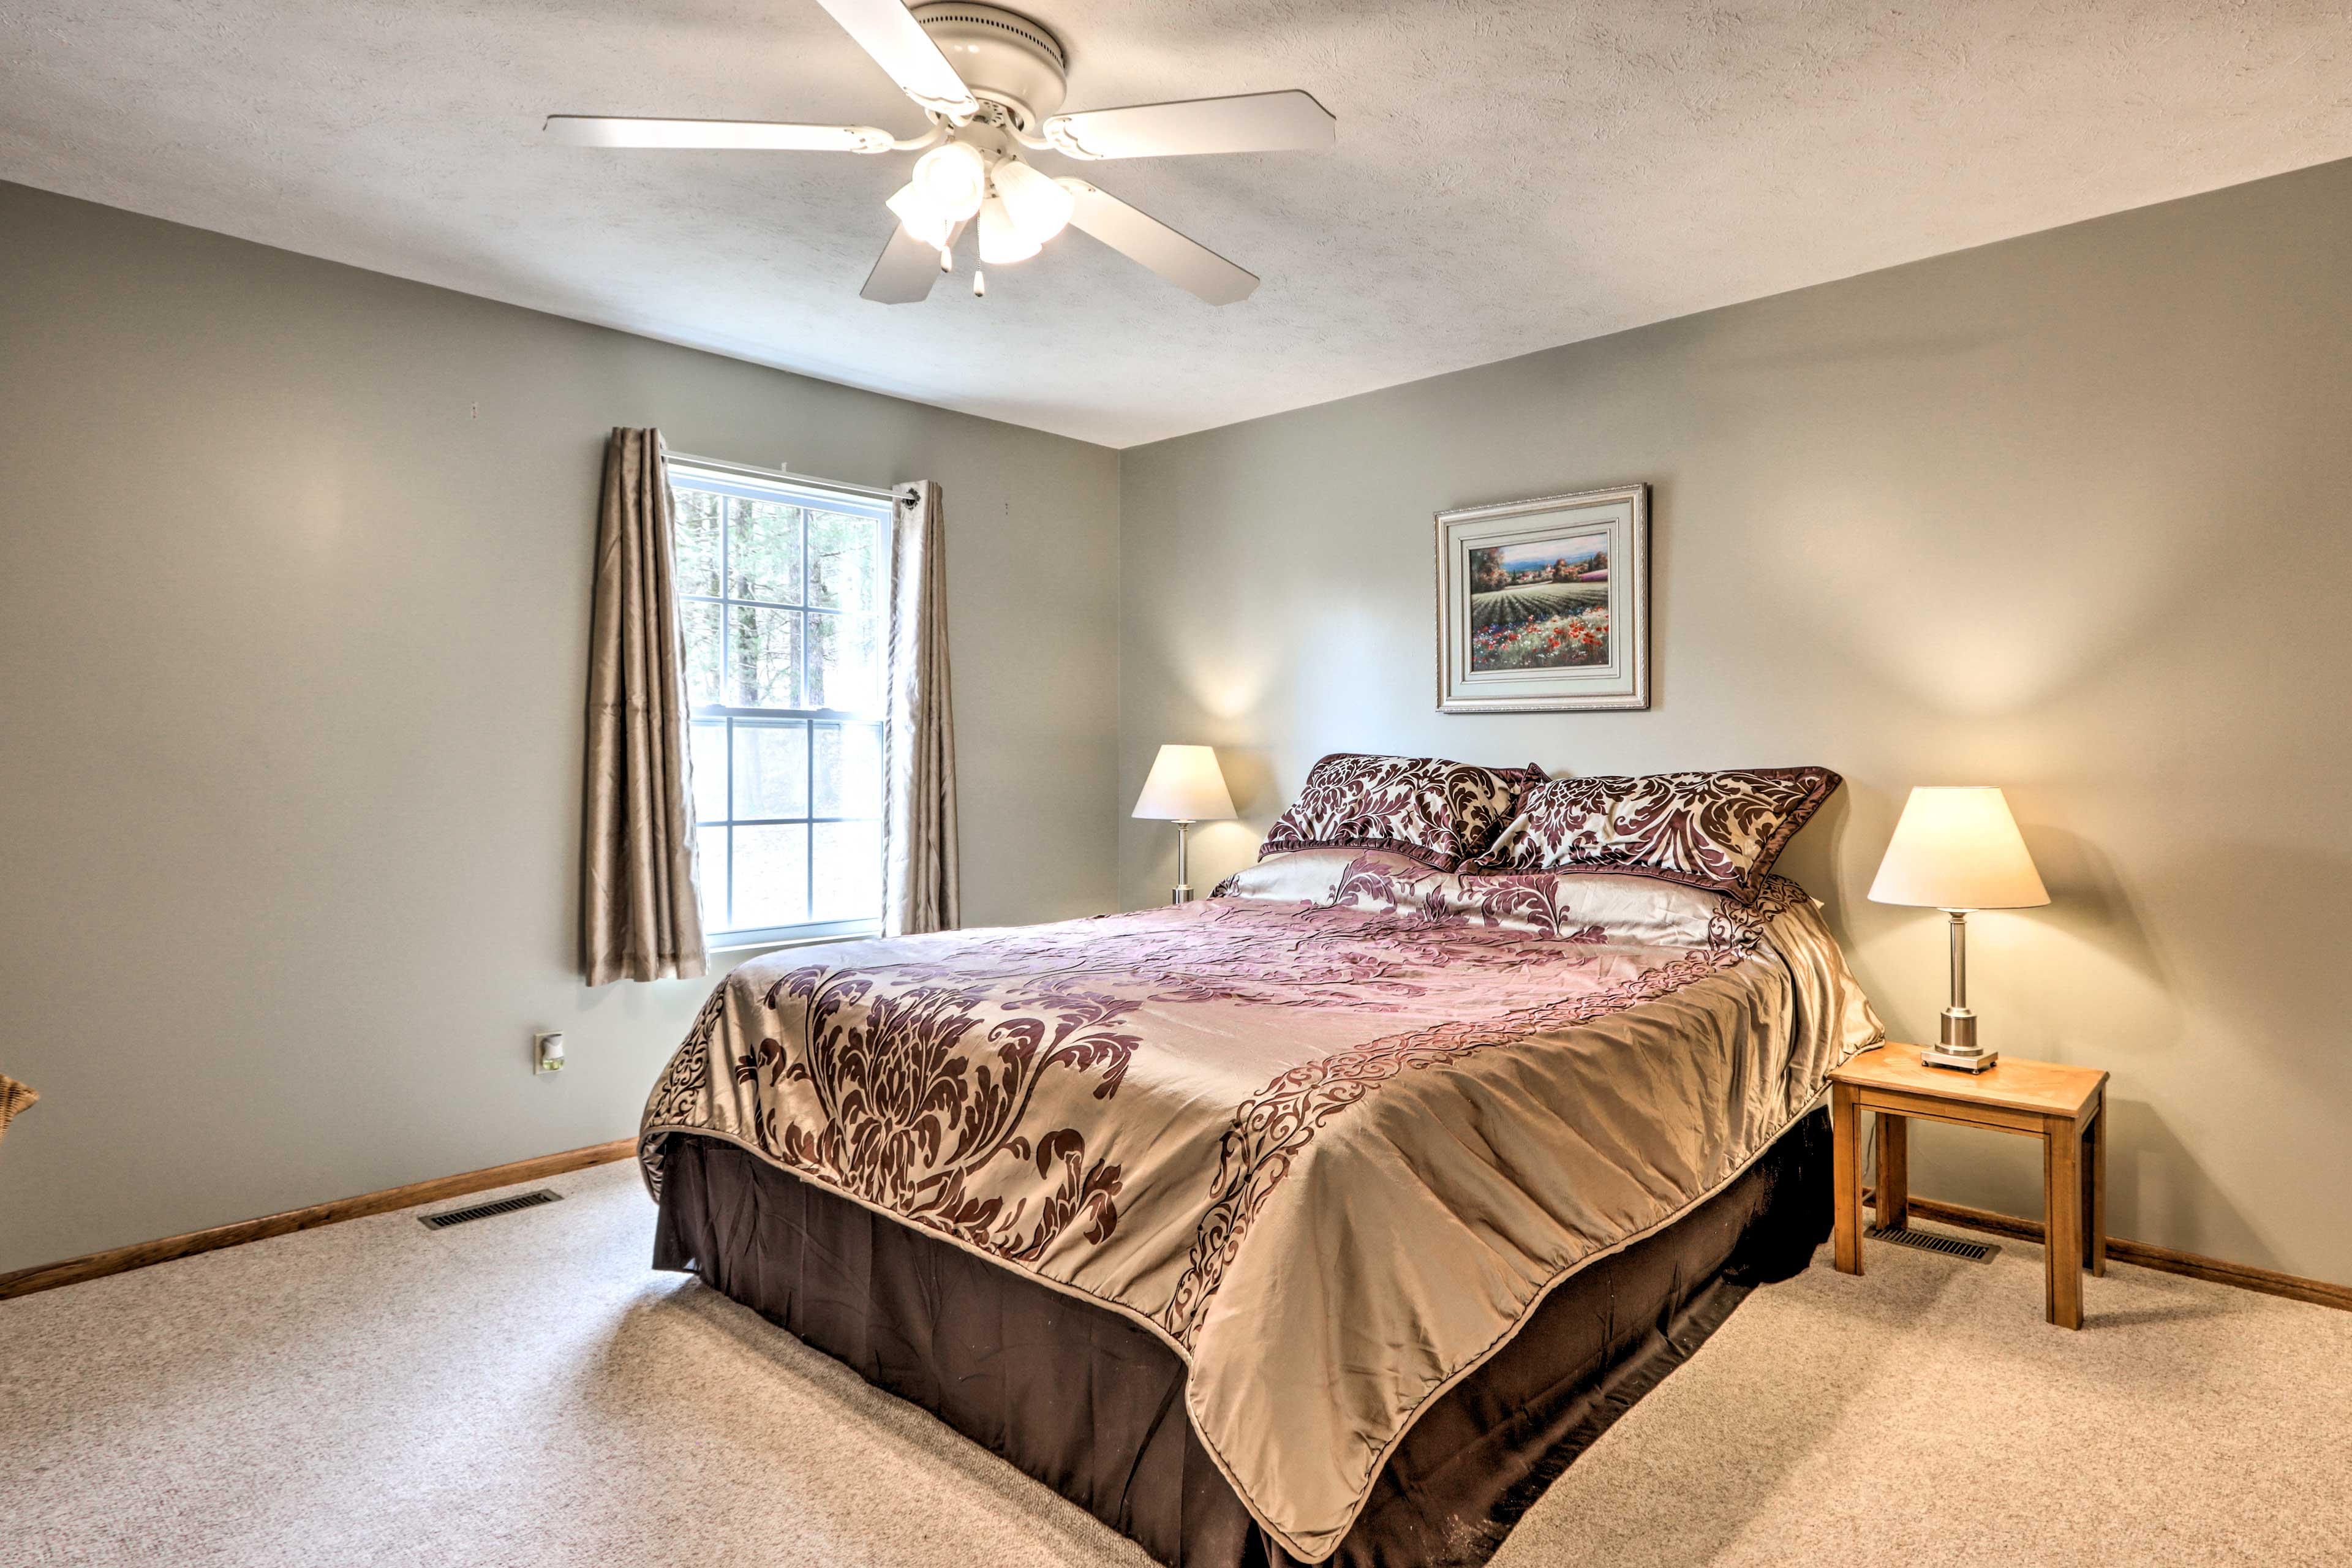 There is a king bed in the master bedroom.